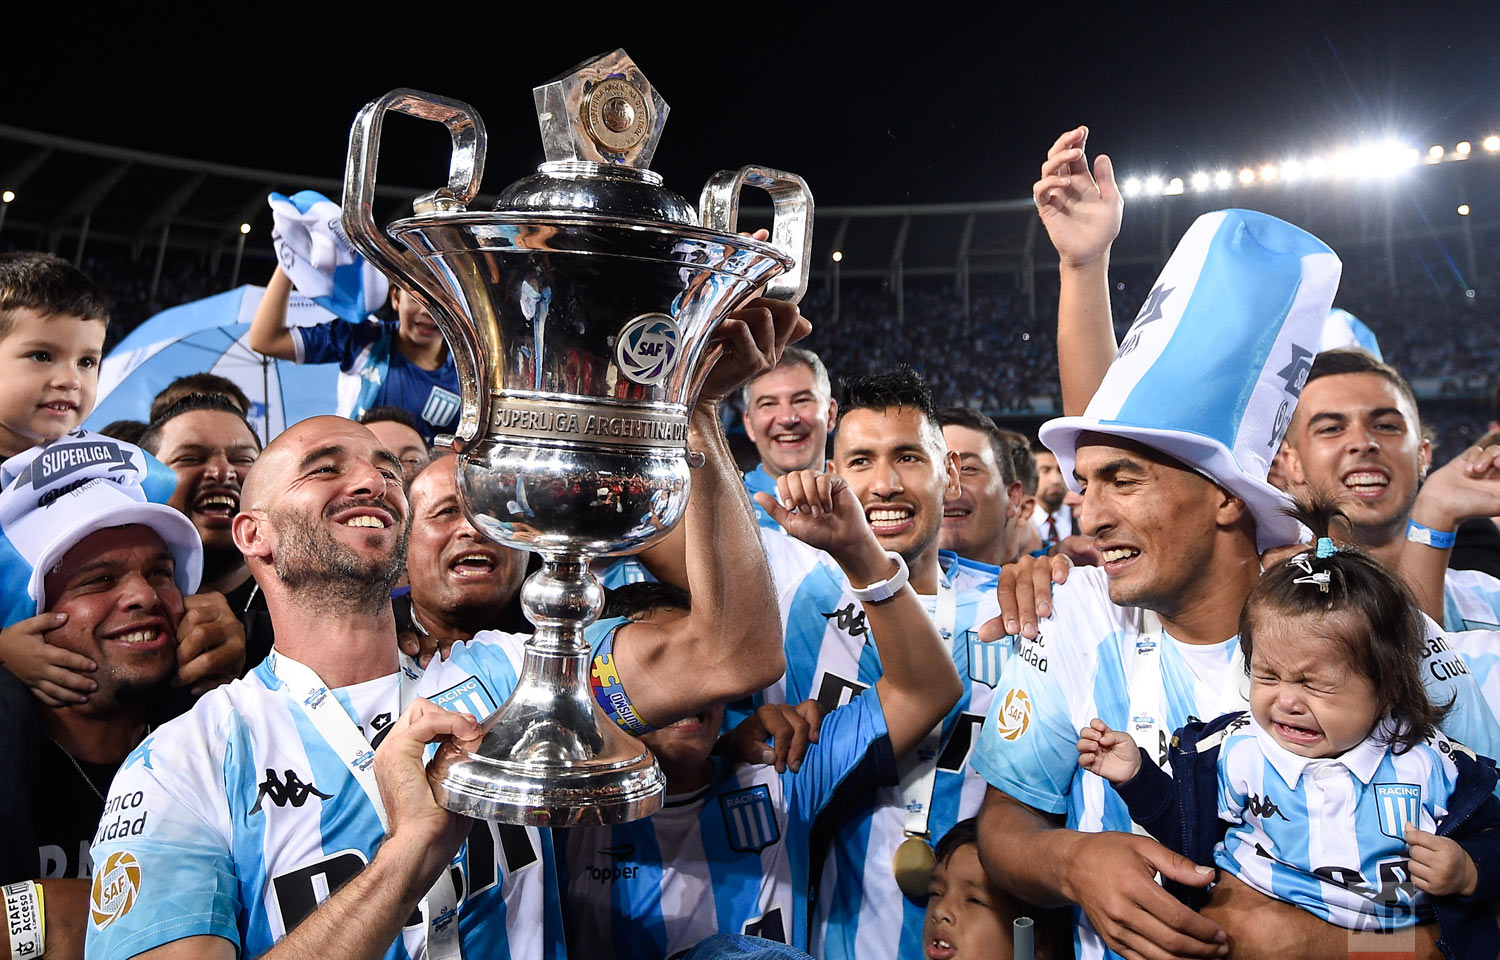 Racing Club players celebrate their national league trophy after defeating Defensa y Justicia in Buenos Aires, Argentina, April 7, 2019. (AP Photo/Gustavo Garello)